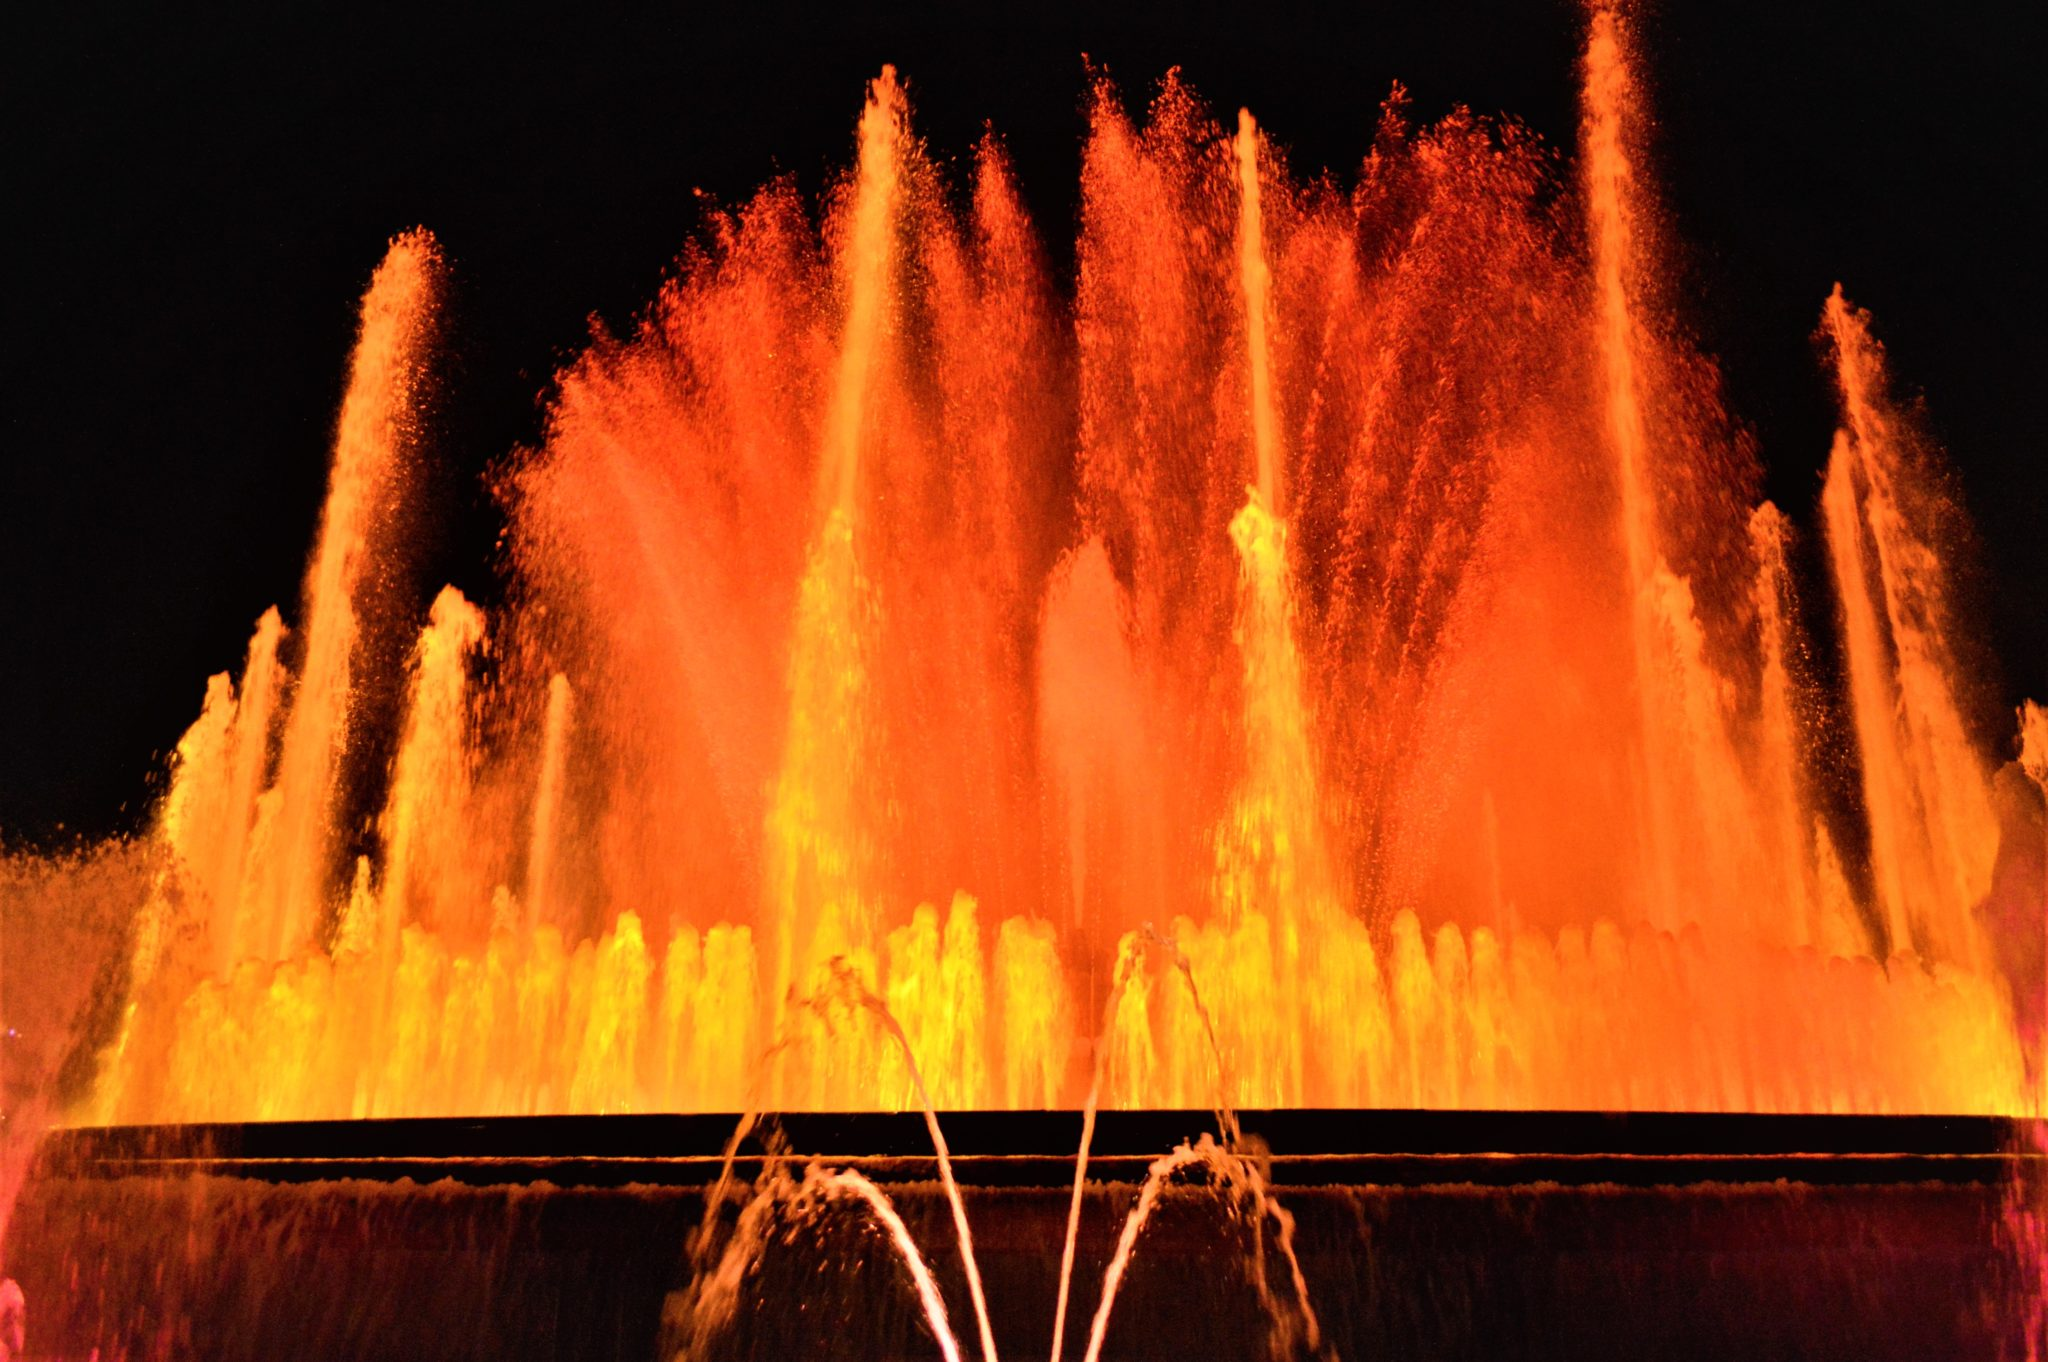 Fire water at the Barcelona dancing fountains, Spain